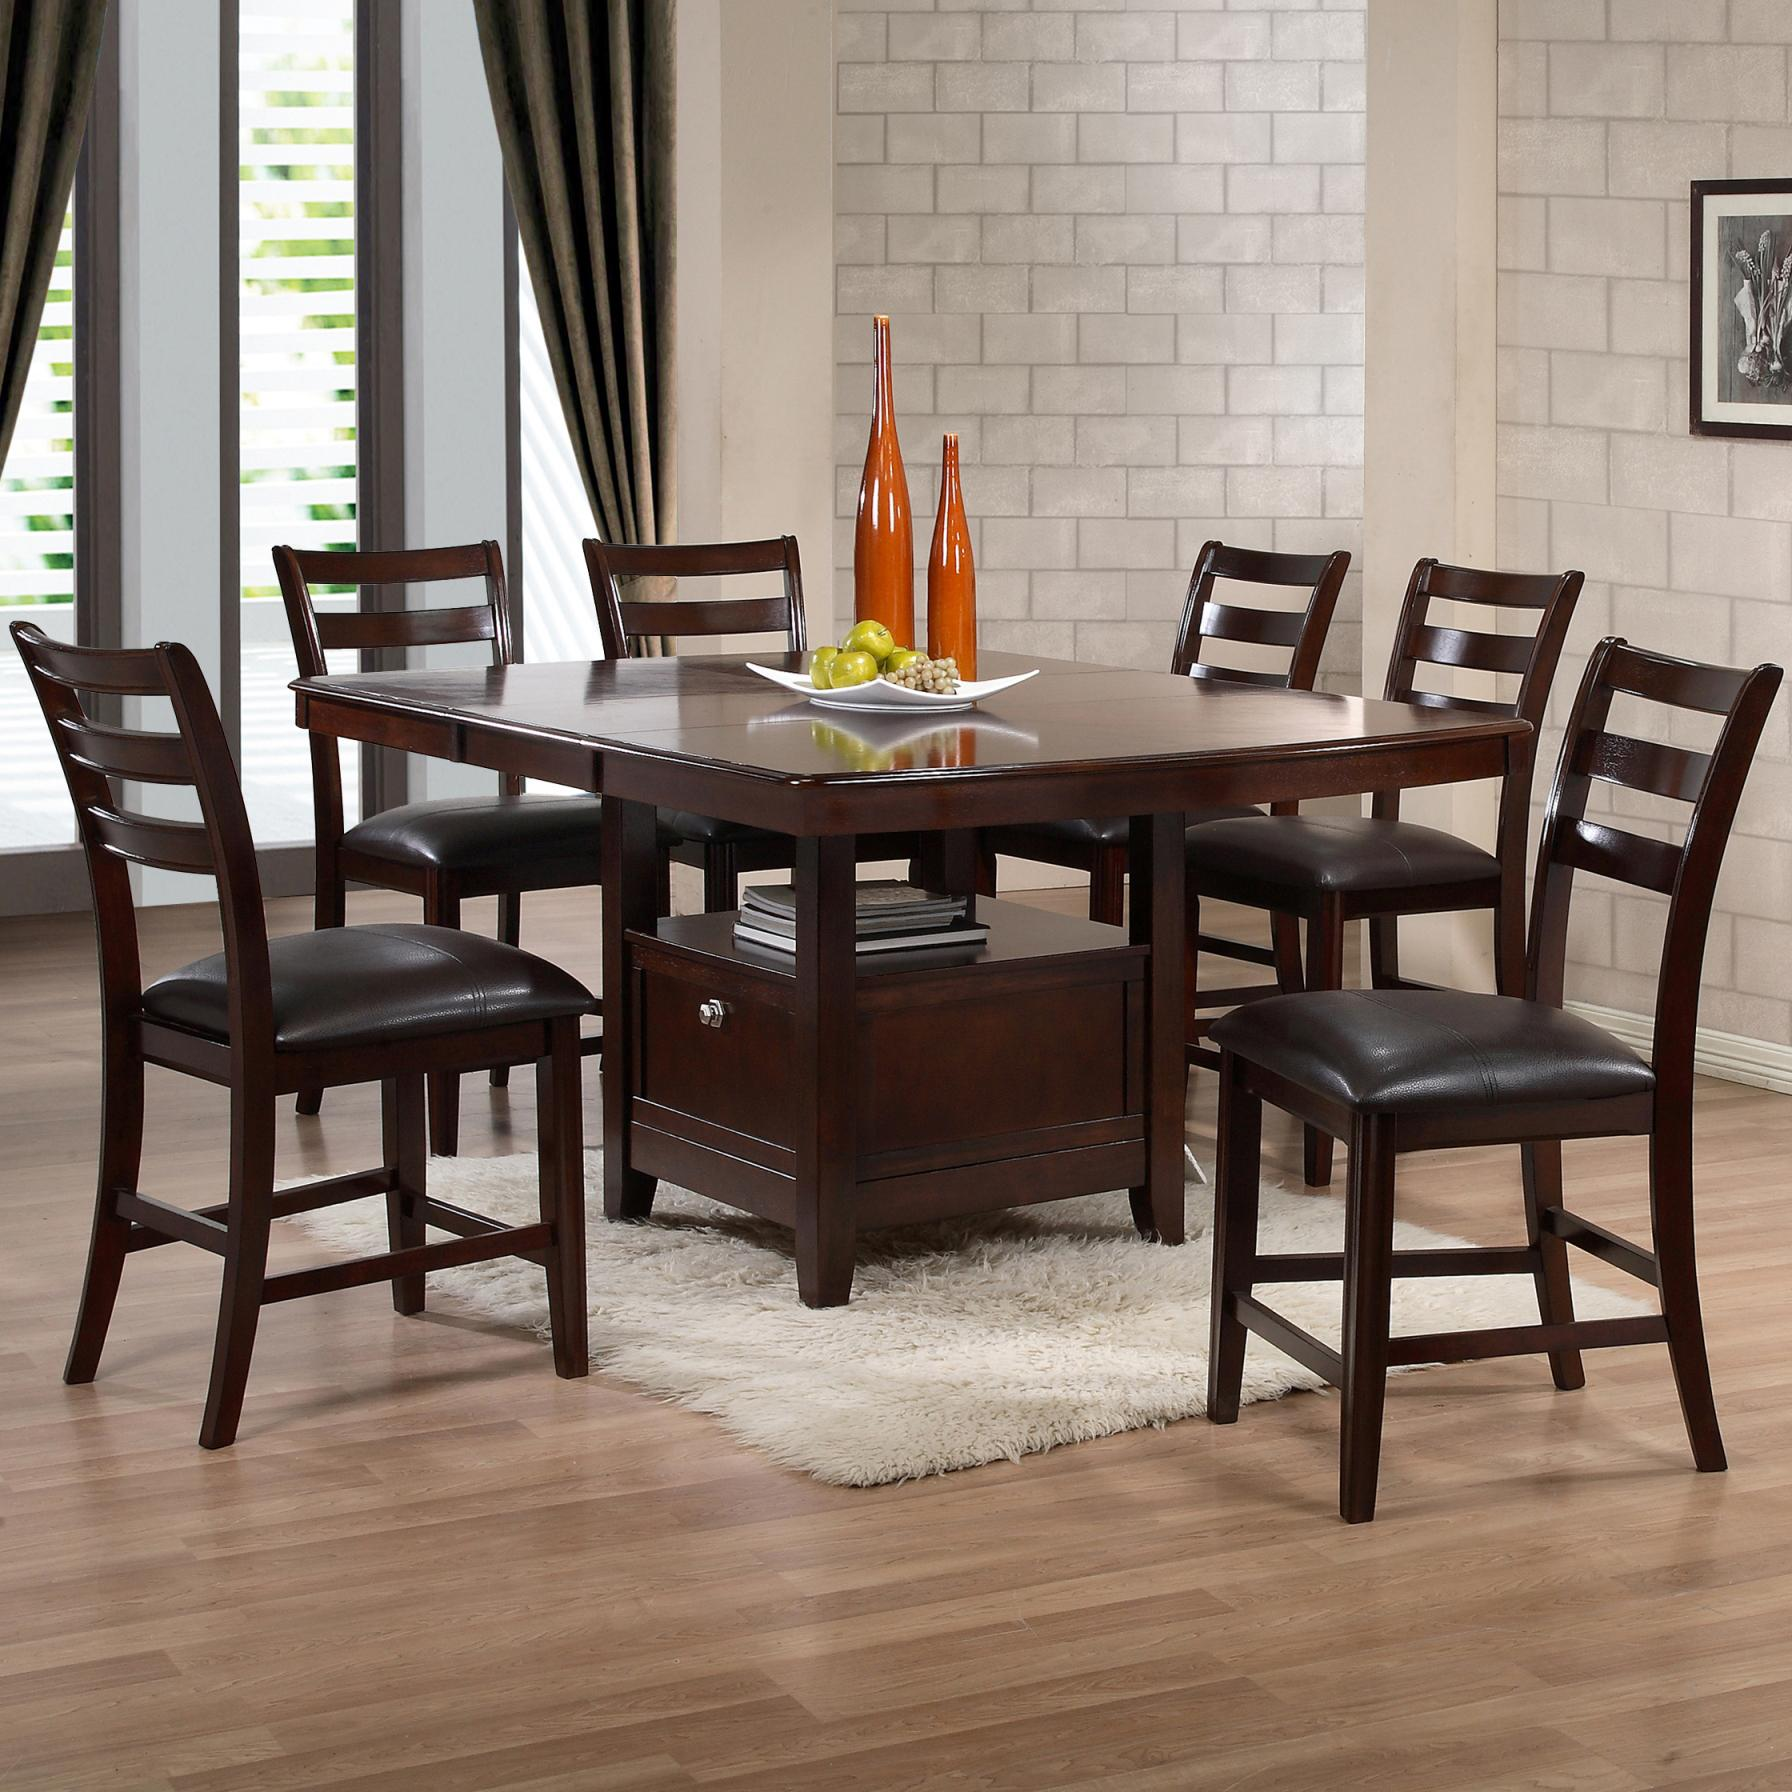 7 Piece Counter Table Dining Set